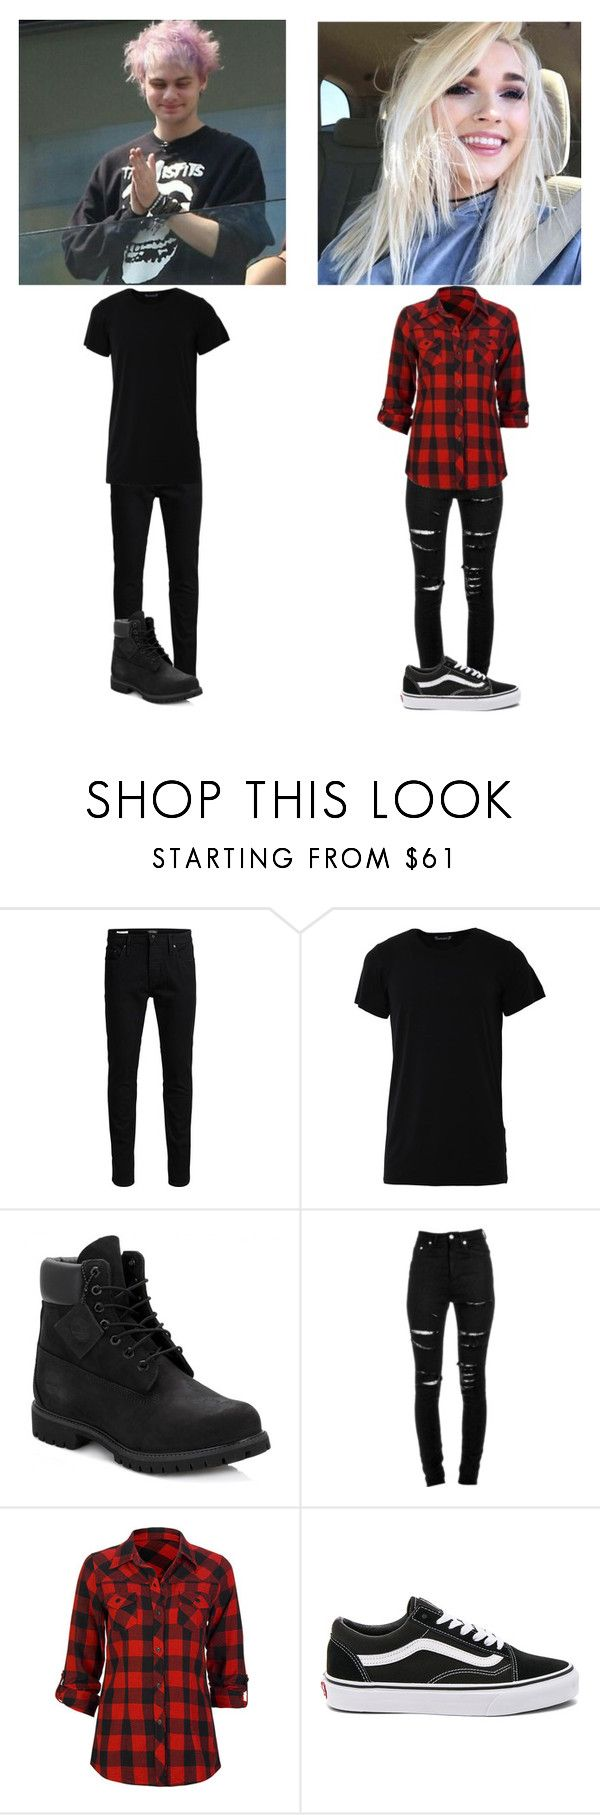 """Michael , Kaitlyn"" by colby-brocks-wife ❤ liked on Polyvore featuring Jack & Jones, Numero00, Timberland, Yves Saint Laurent, Full Tilt and Vans"